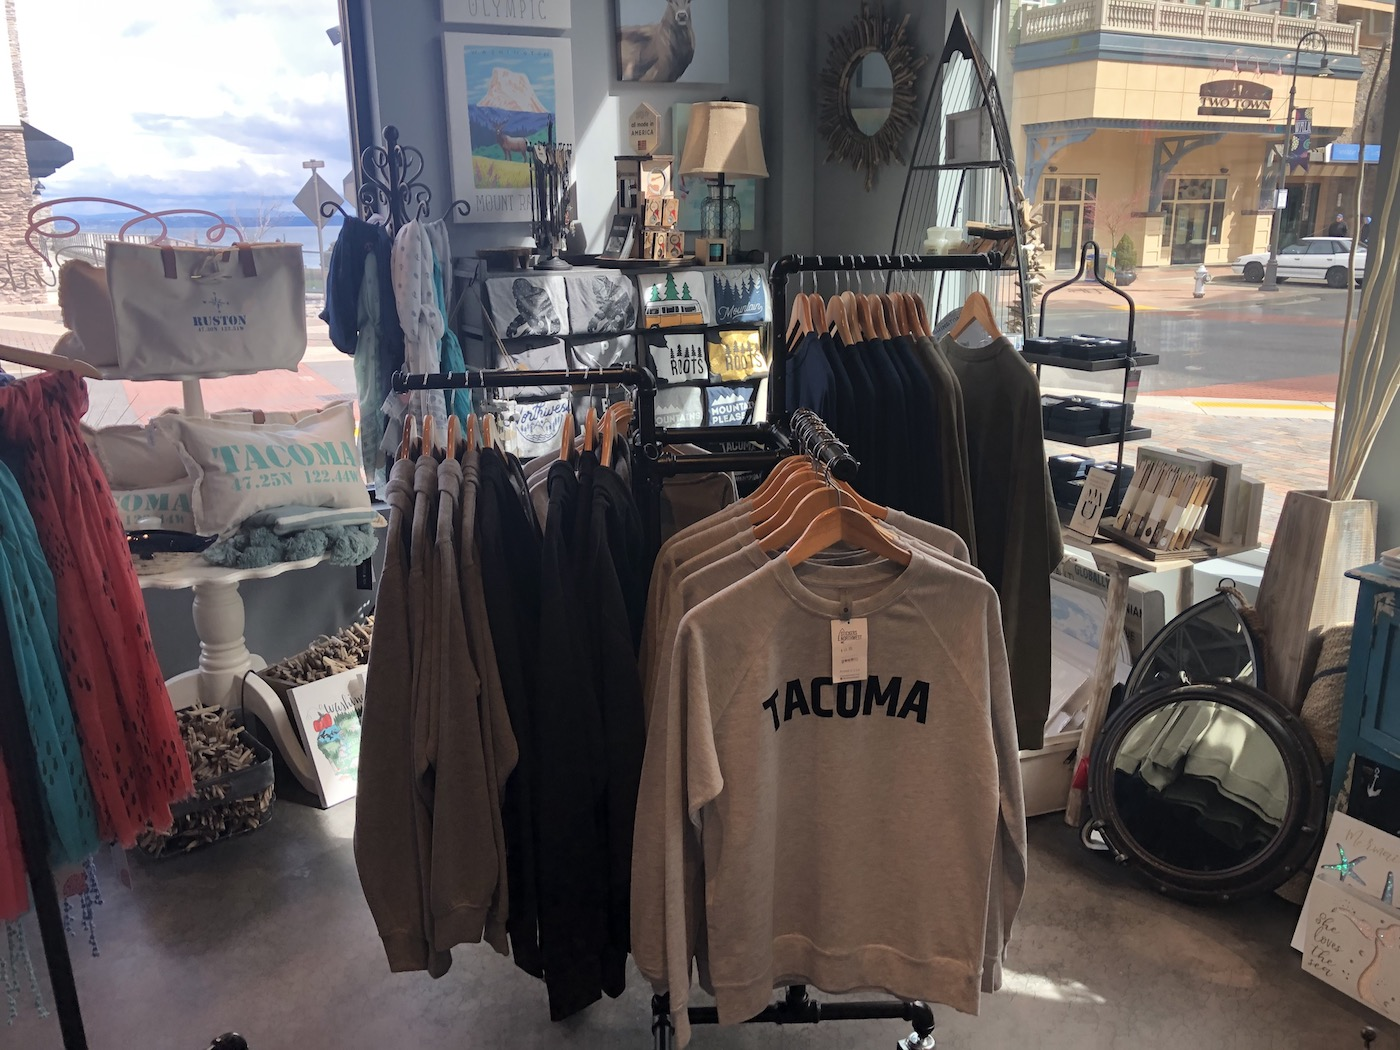 tickled-pink-clothing-store-ruston.jpg